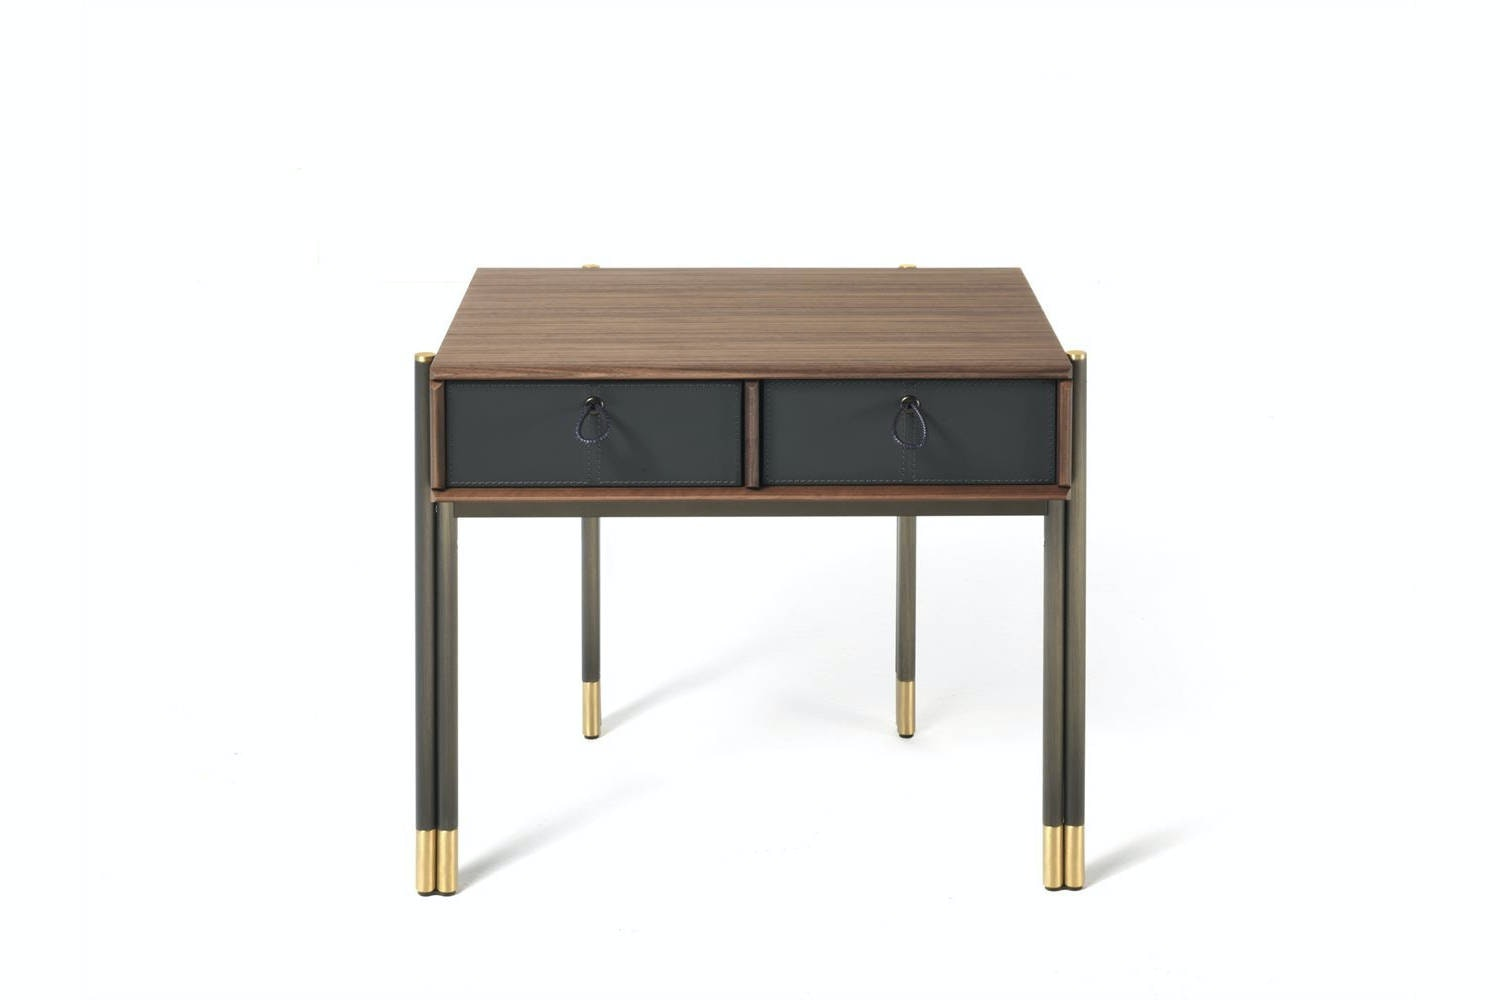 Bayus 1 Bedside Table by Gabriele and Oscar Buratti for Porada